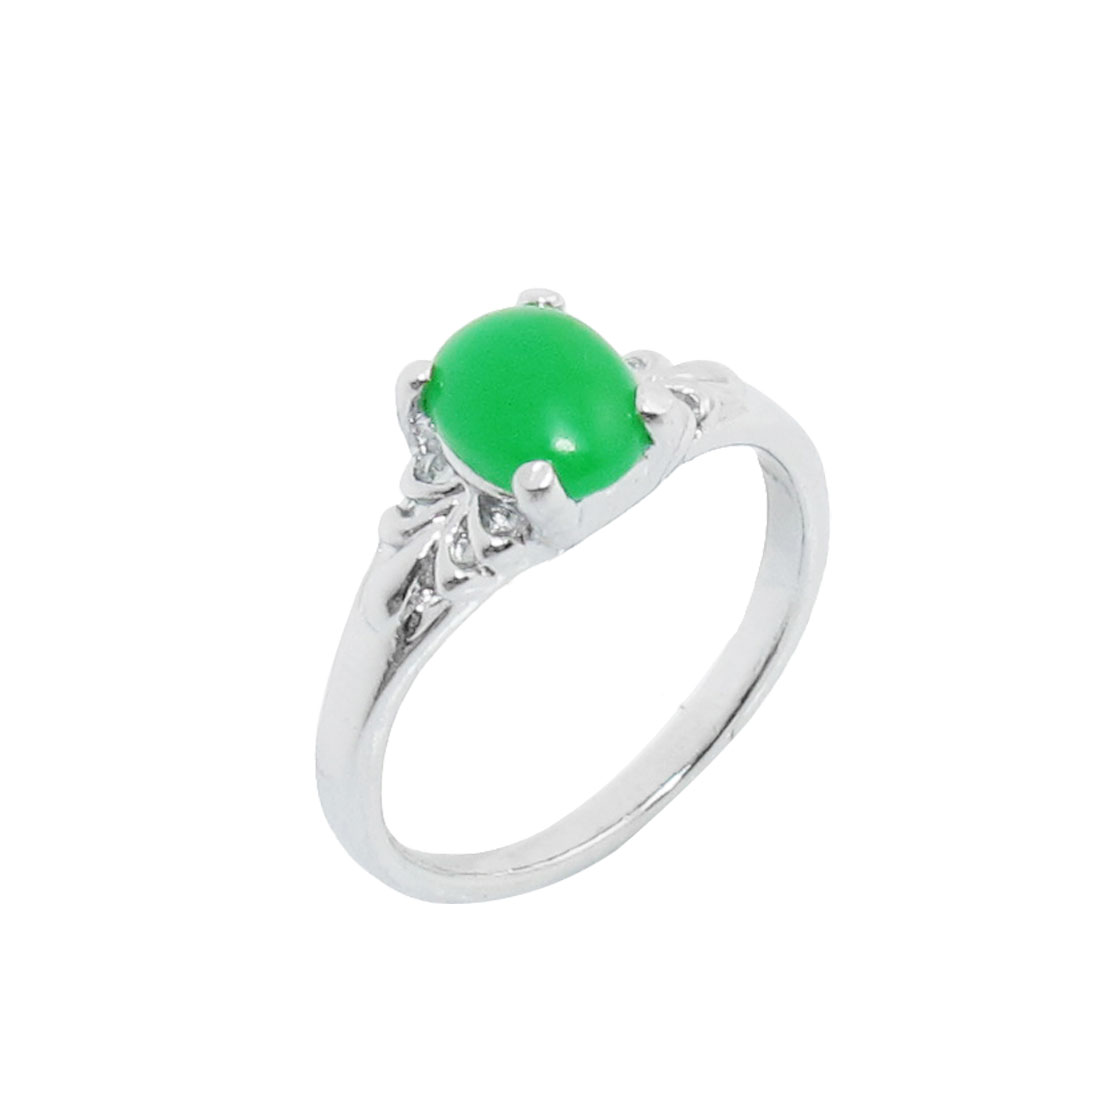 US Size 6 Green Plastic Crystal Accent Silver Tone Finger Ring for Women